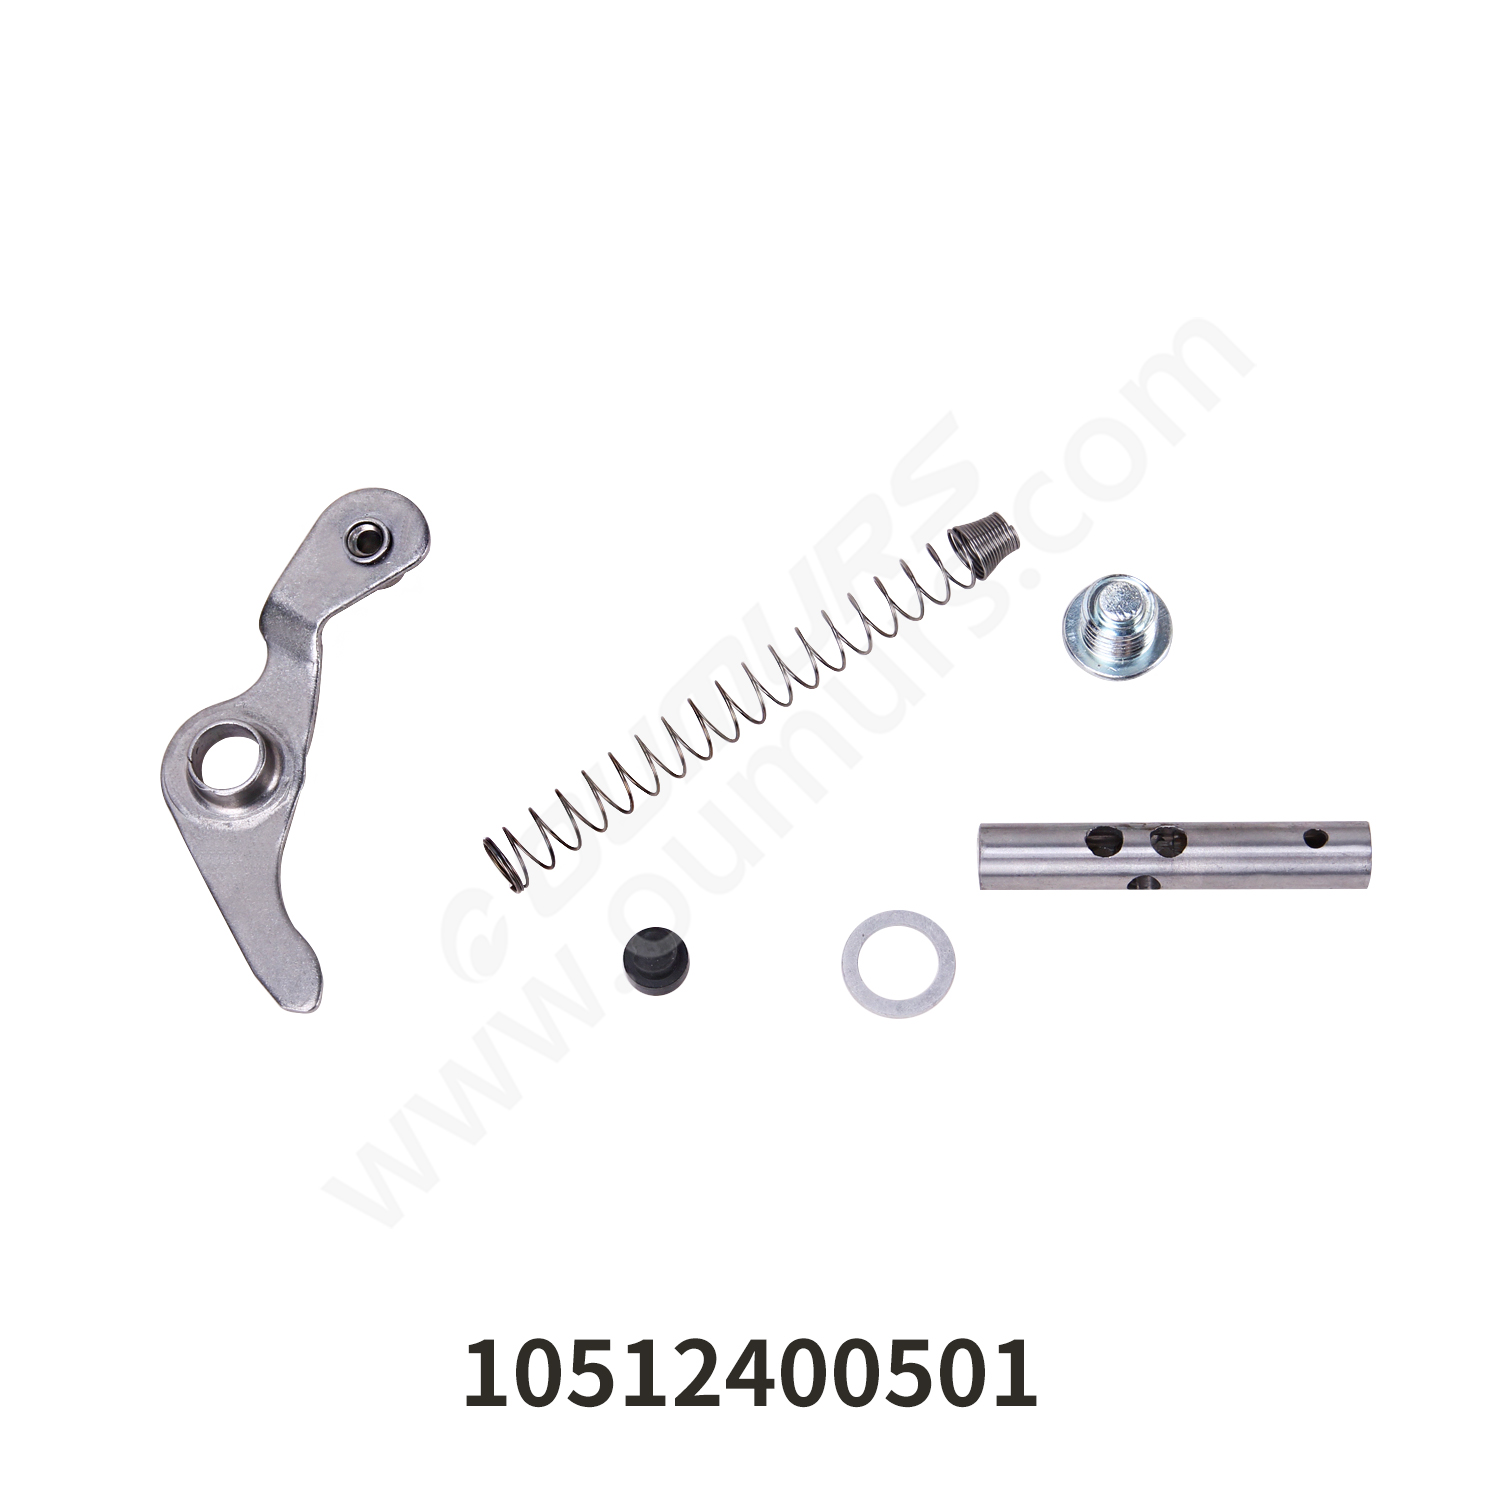 TENSIONER ROD COMPONENTS - DY100